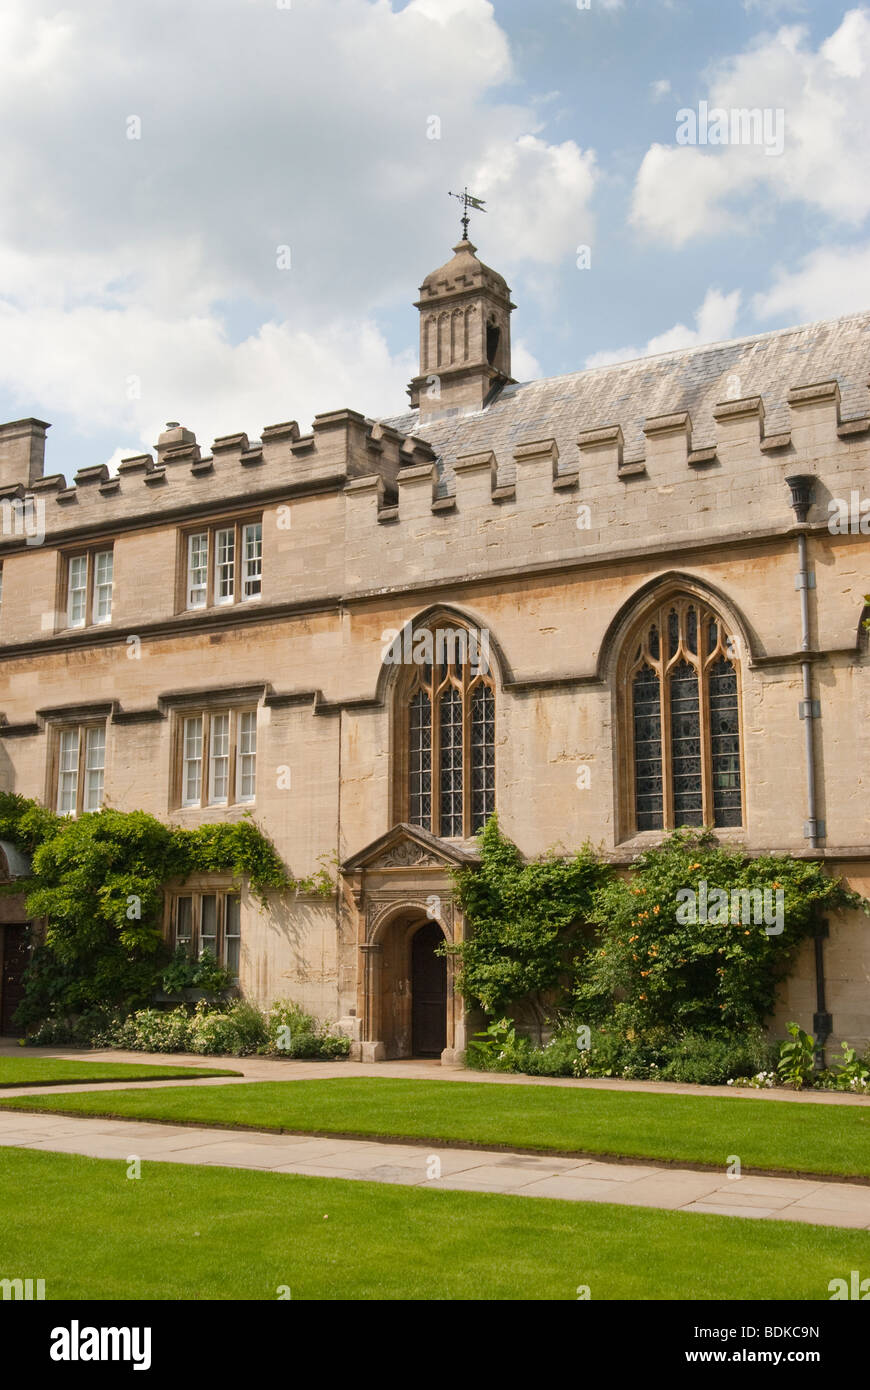 View of the exterior of the chapel, Jesus College Oxford England UK - Stock Image